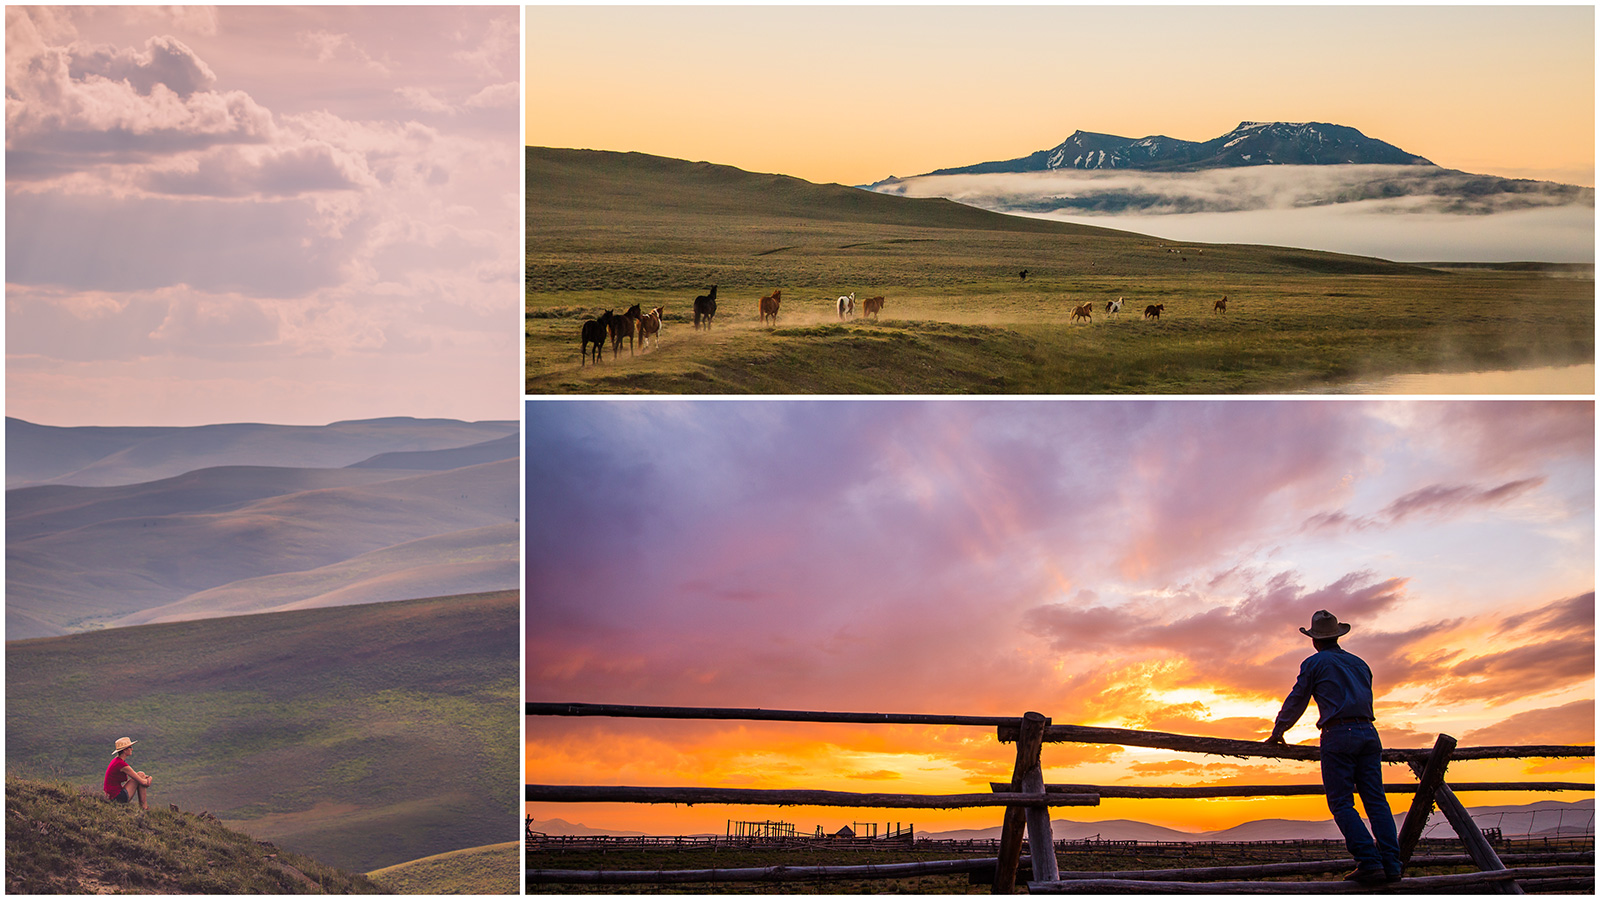 montana, usa, travel, wanderlust, centennial valley, yellowstone, jbarl, ranch, cowboy, photojournalism, outwest, montana moment, bigsky, sunset, sunrays, holistic, anhede, holistic cattle ranch, holistic ranch, big sky country, in montana, on assignment